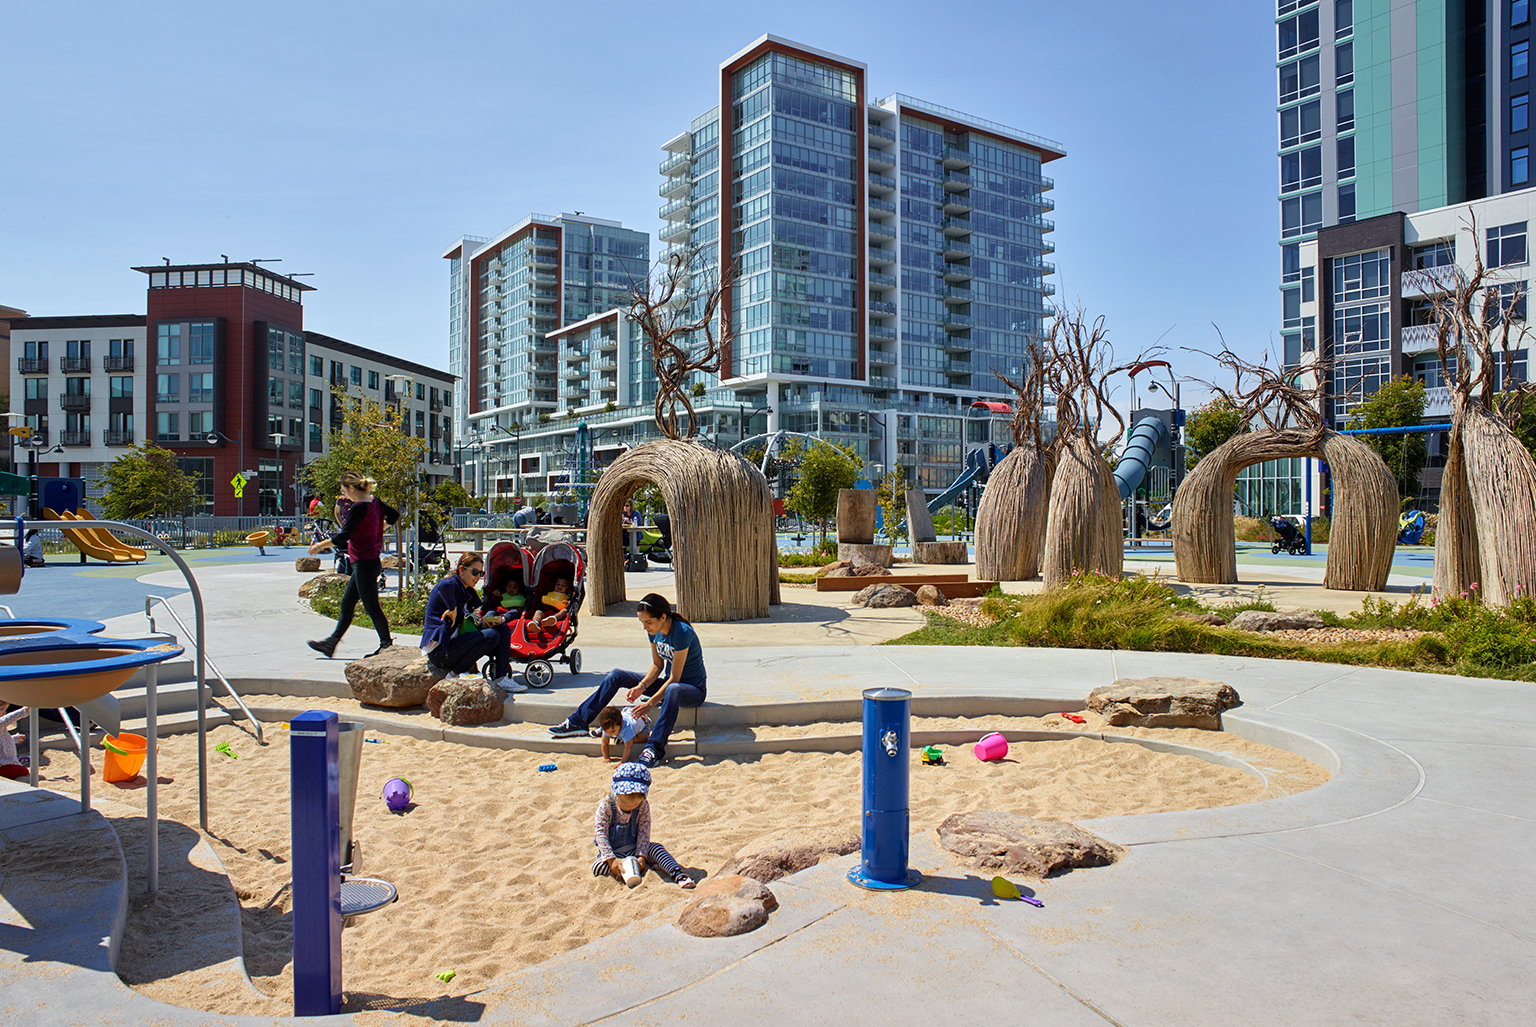 Mission Bay Kids' Park